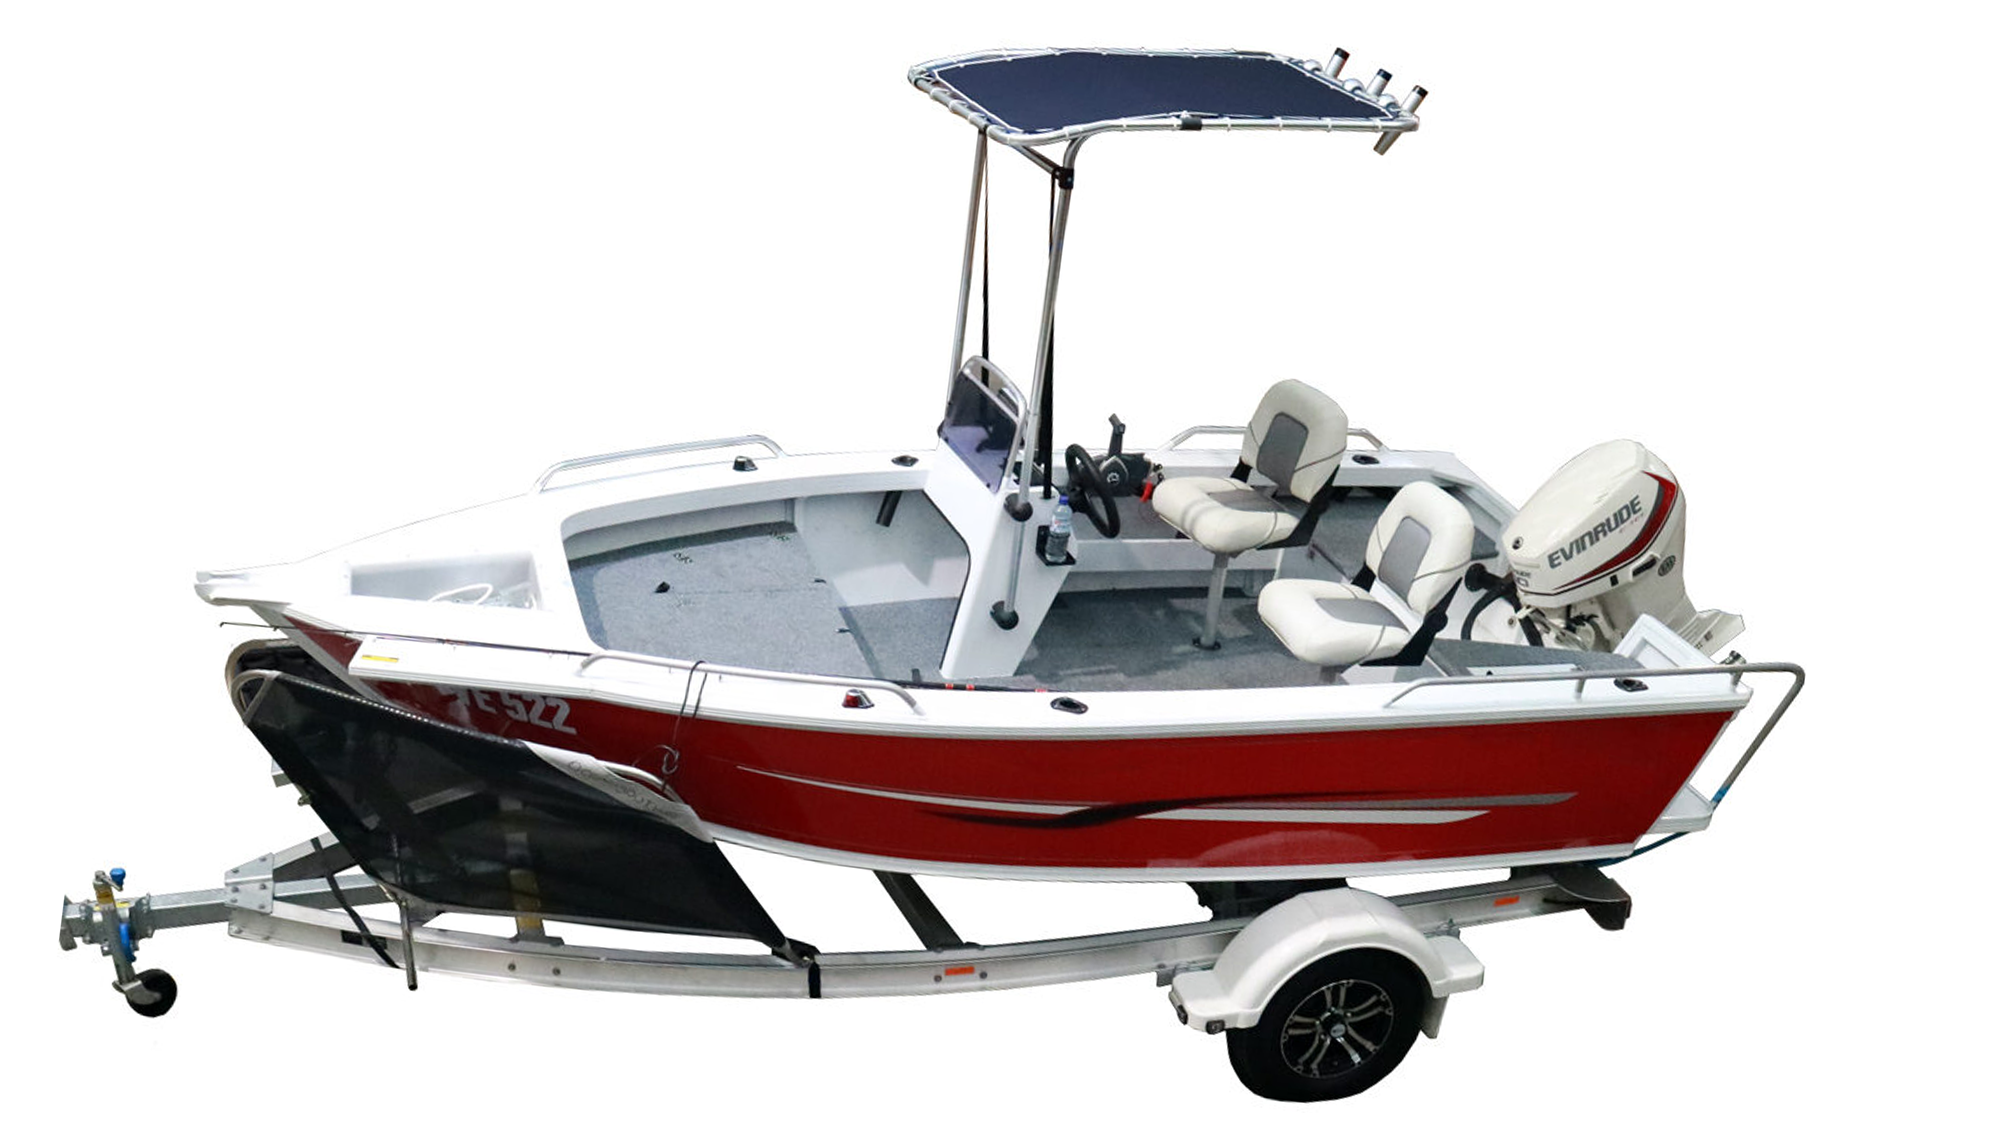 Retractable Seagull T-Top